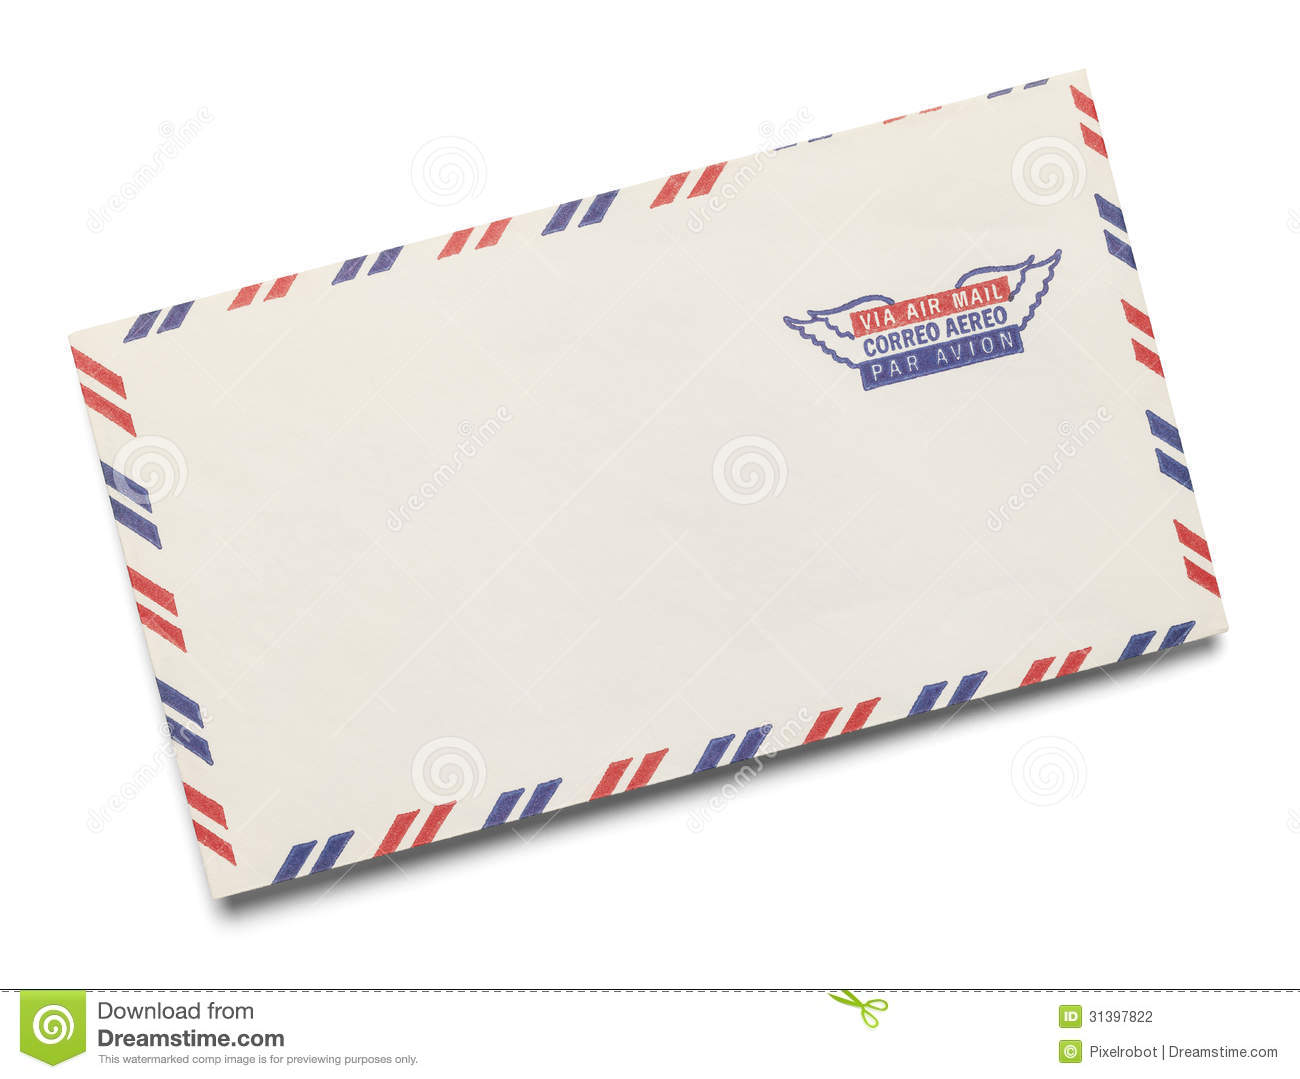 Airmail letter clipart.